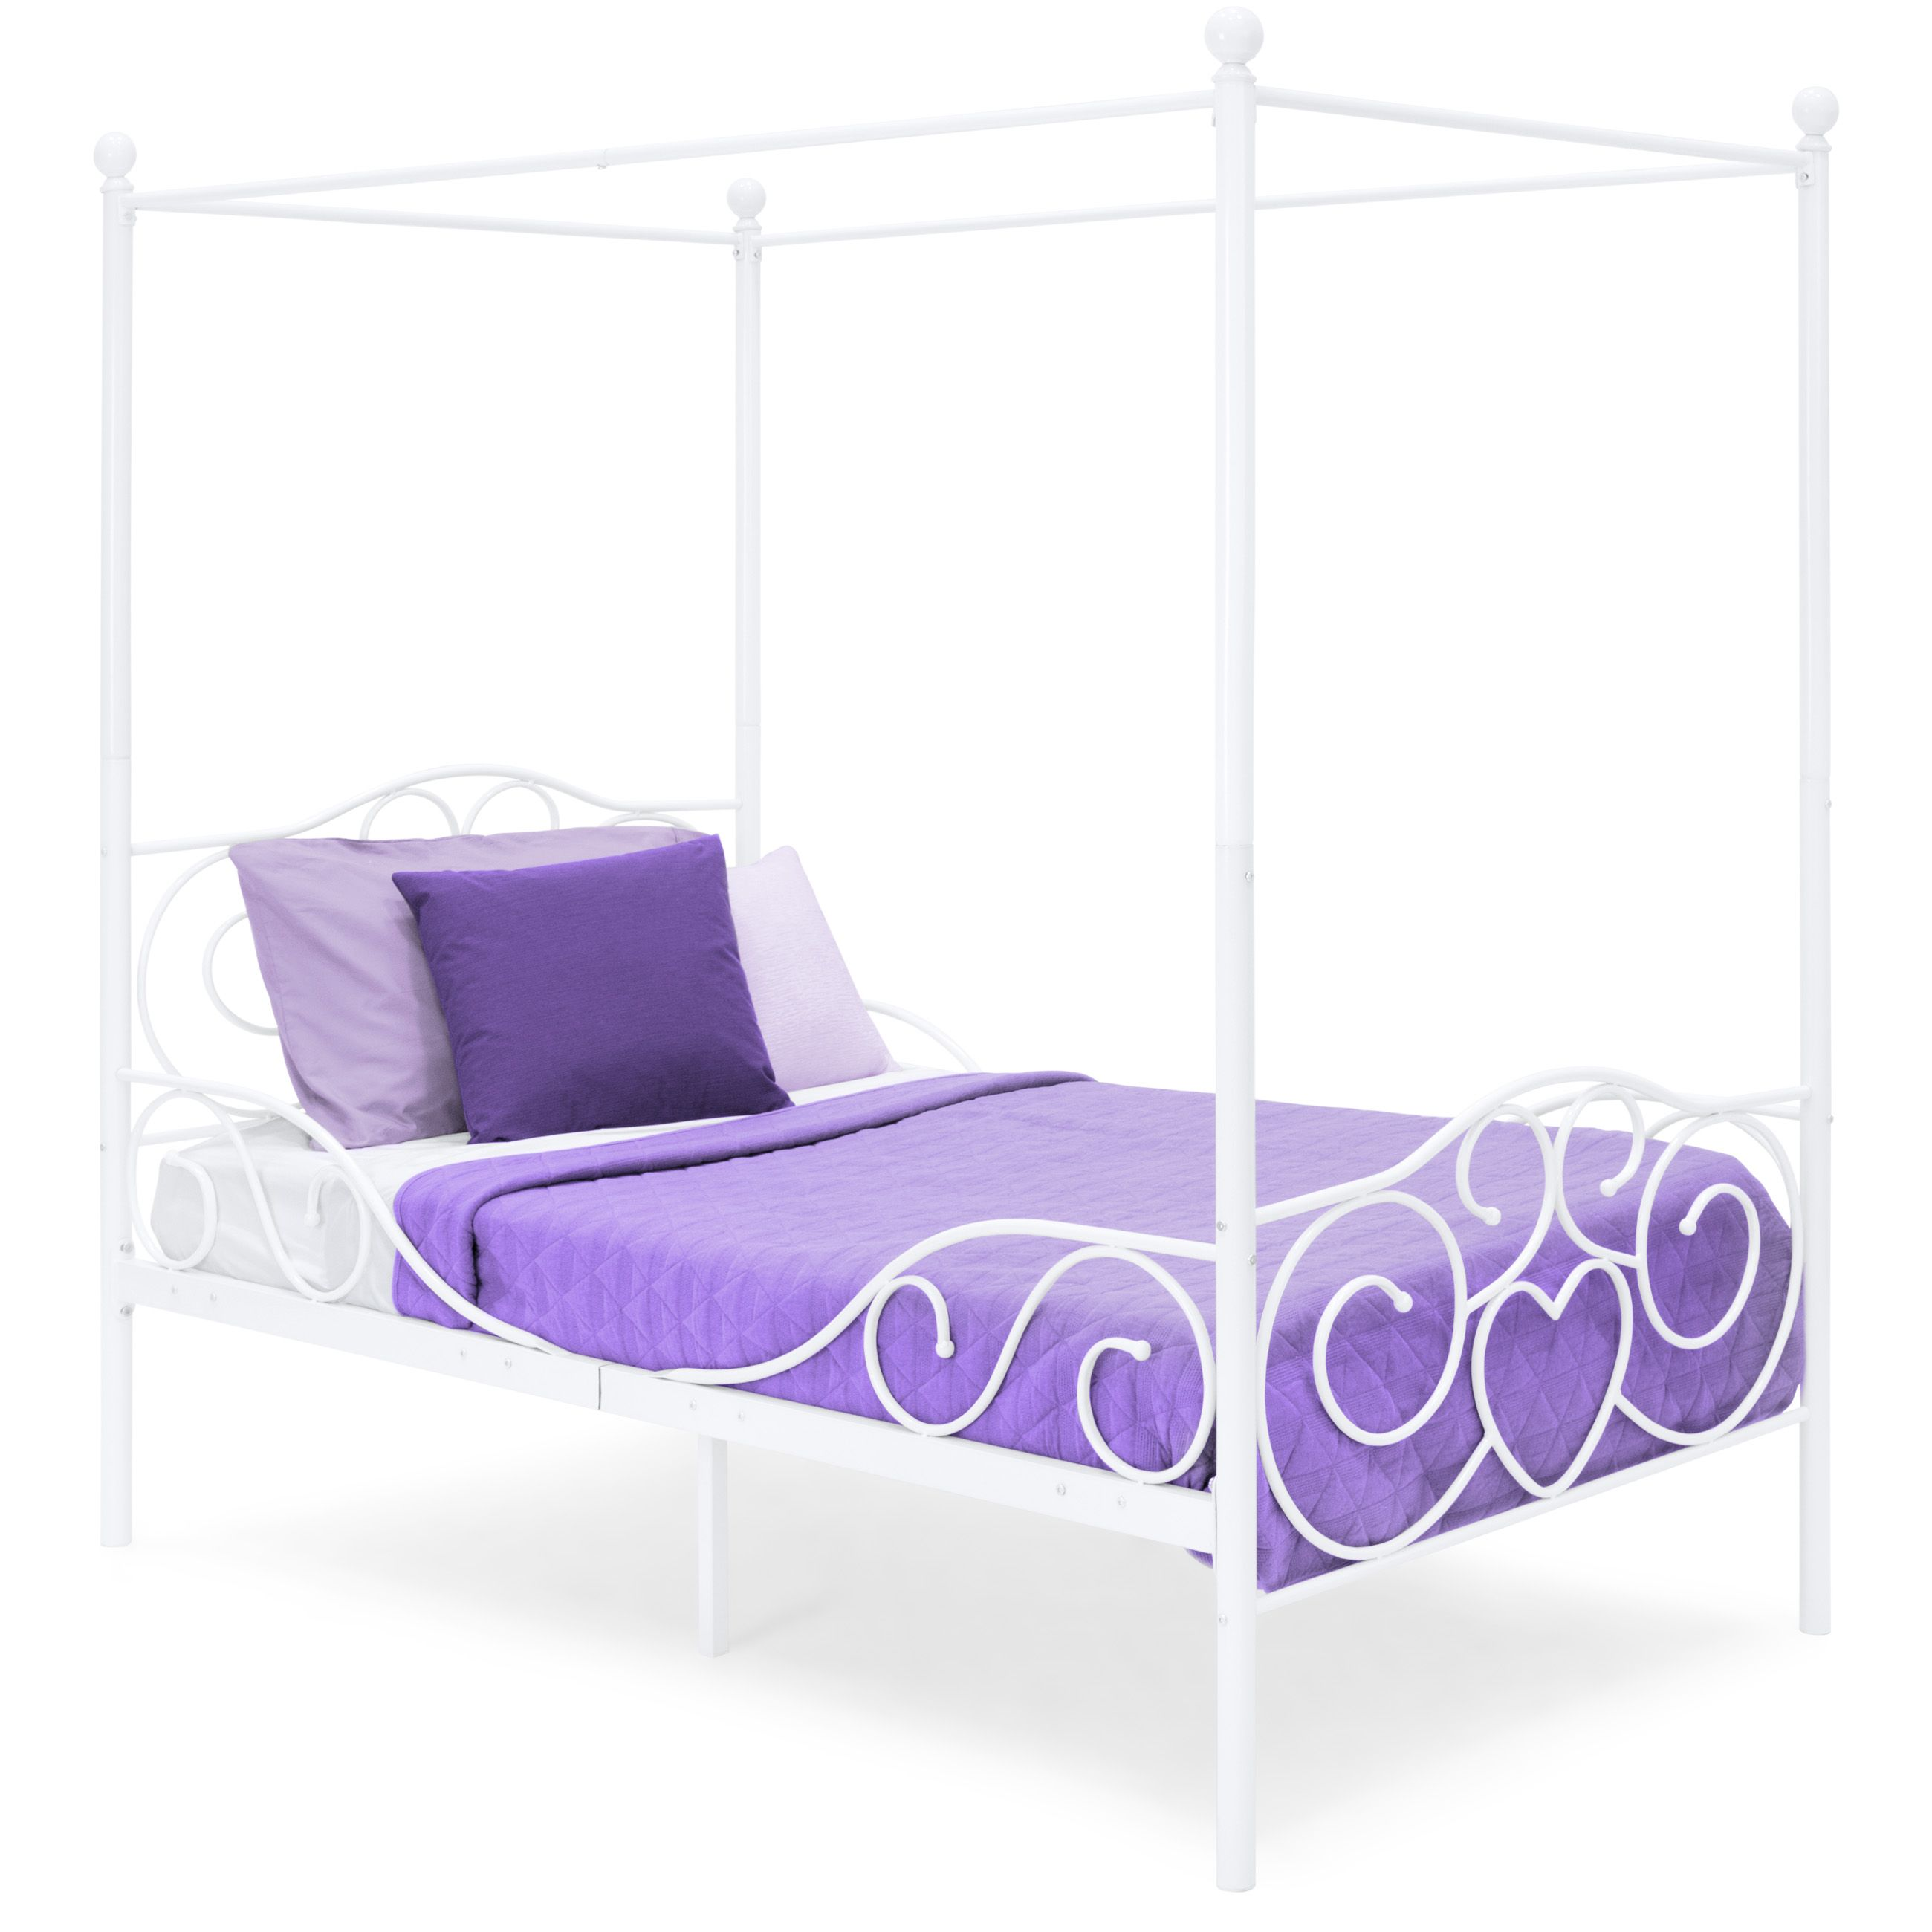 Home Canopy bedroom, Bed frame, Metal canopy